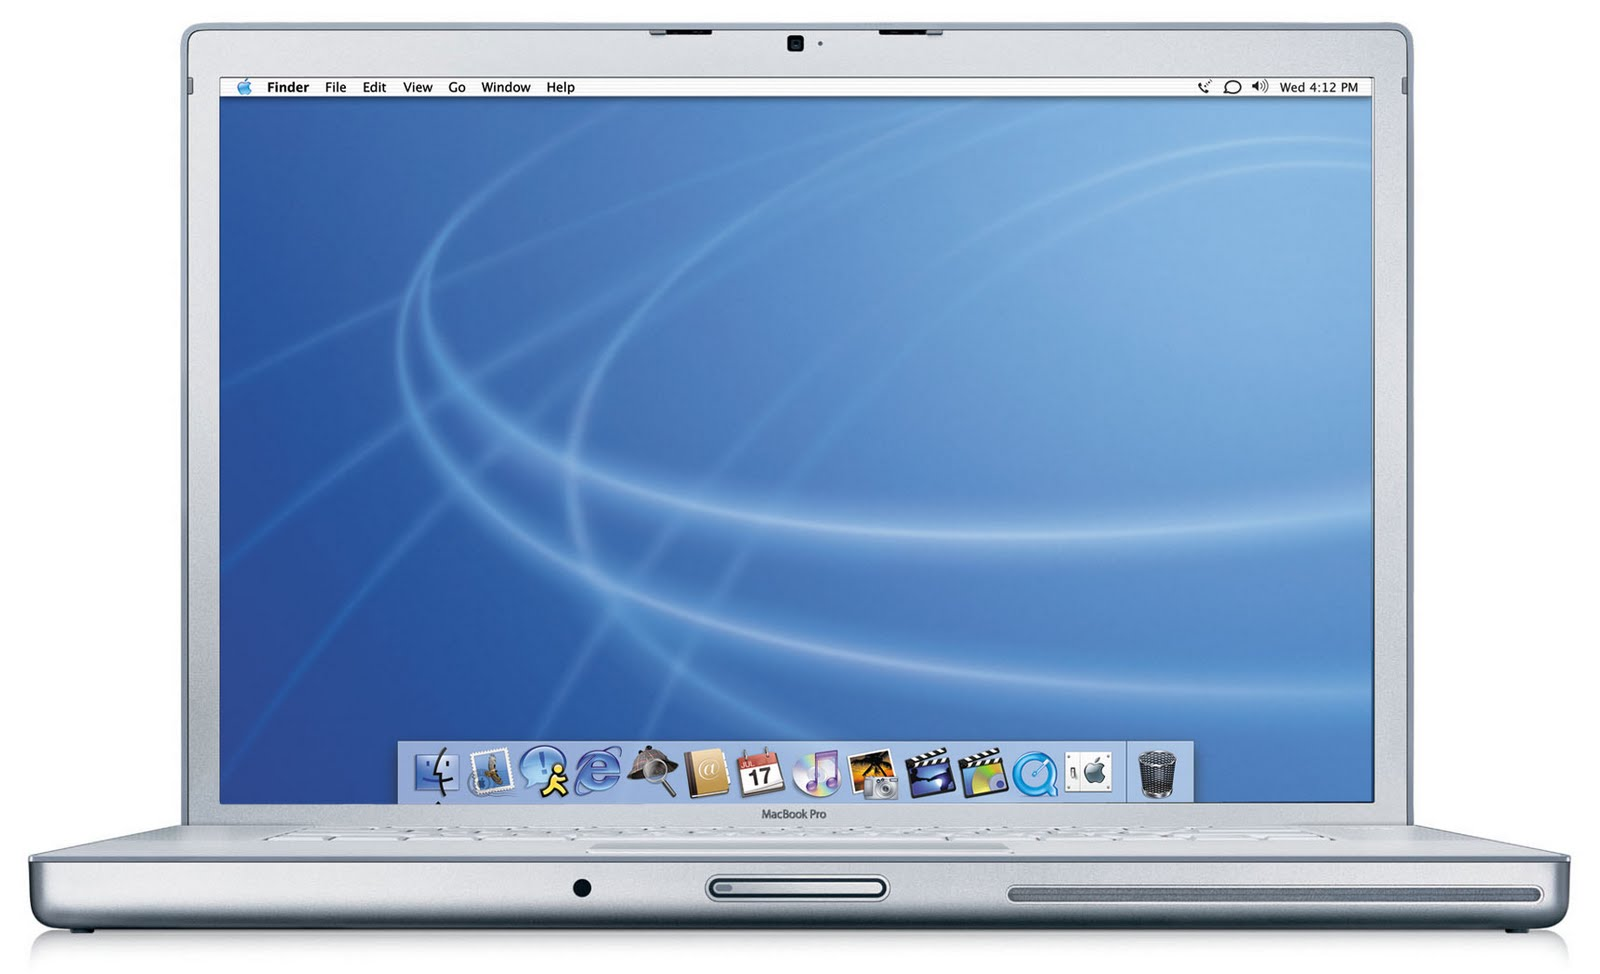 mac laptops - photo #21